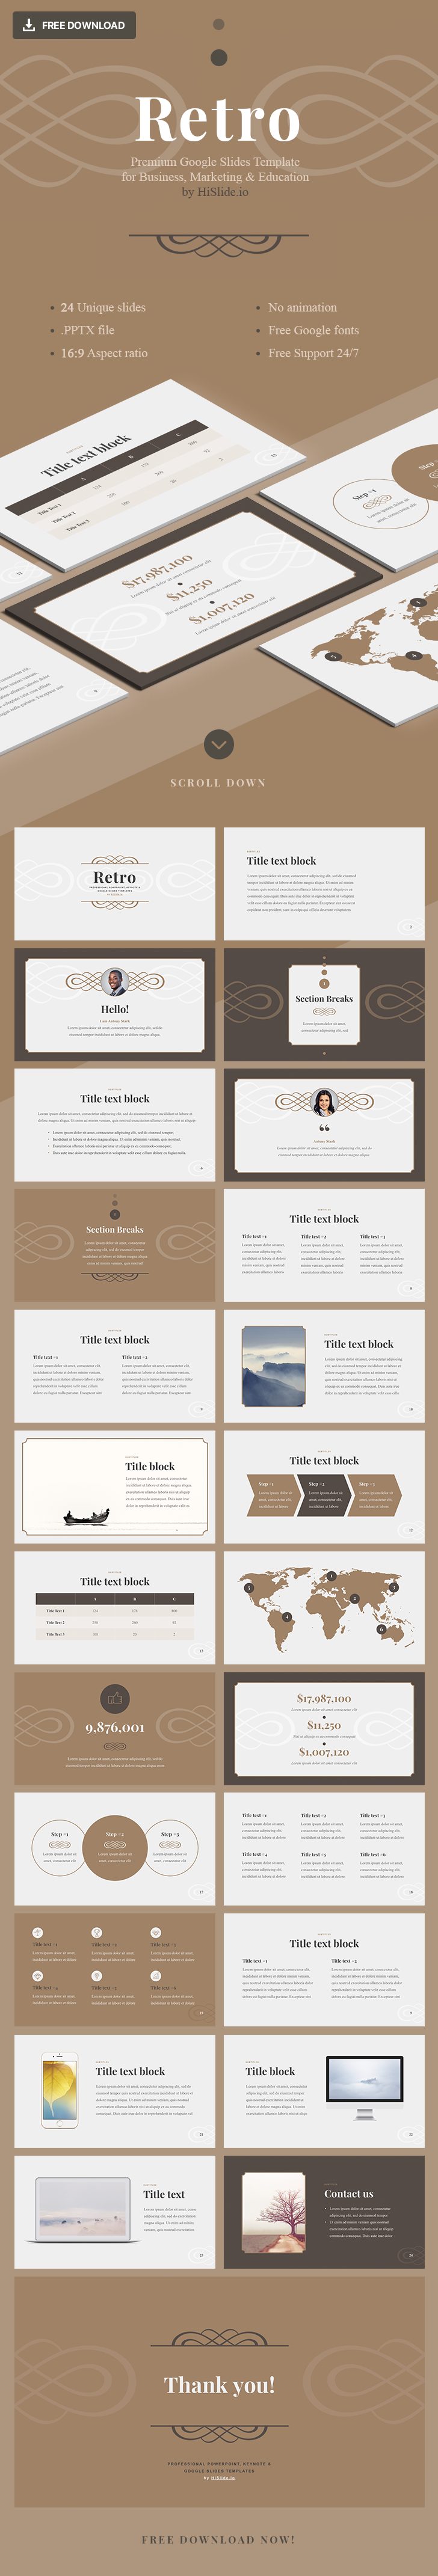 Retro-Google-Slides-Template-Free-Download